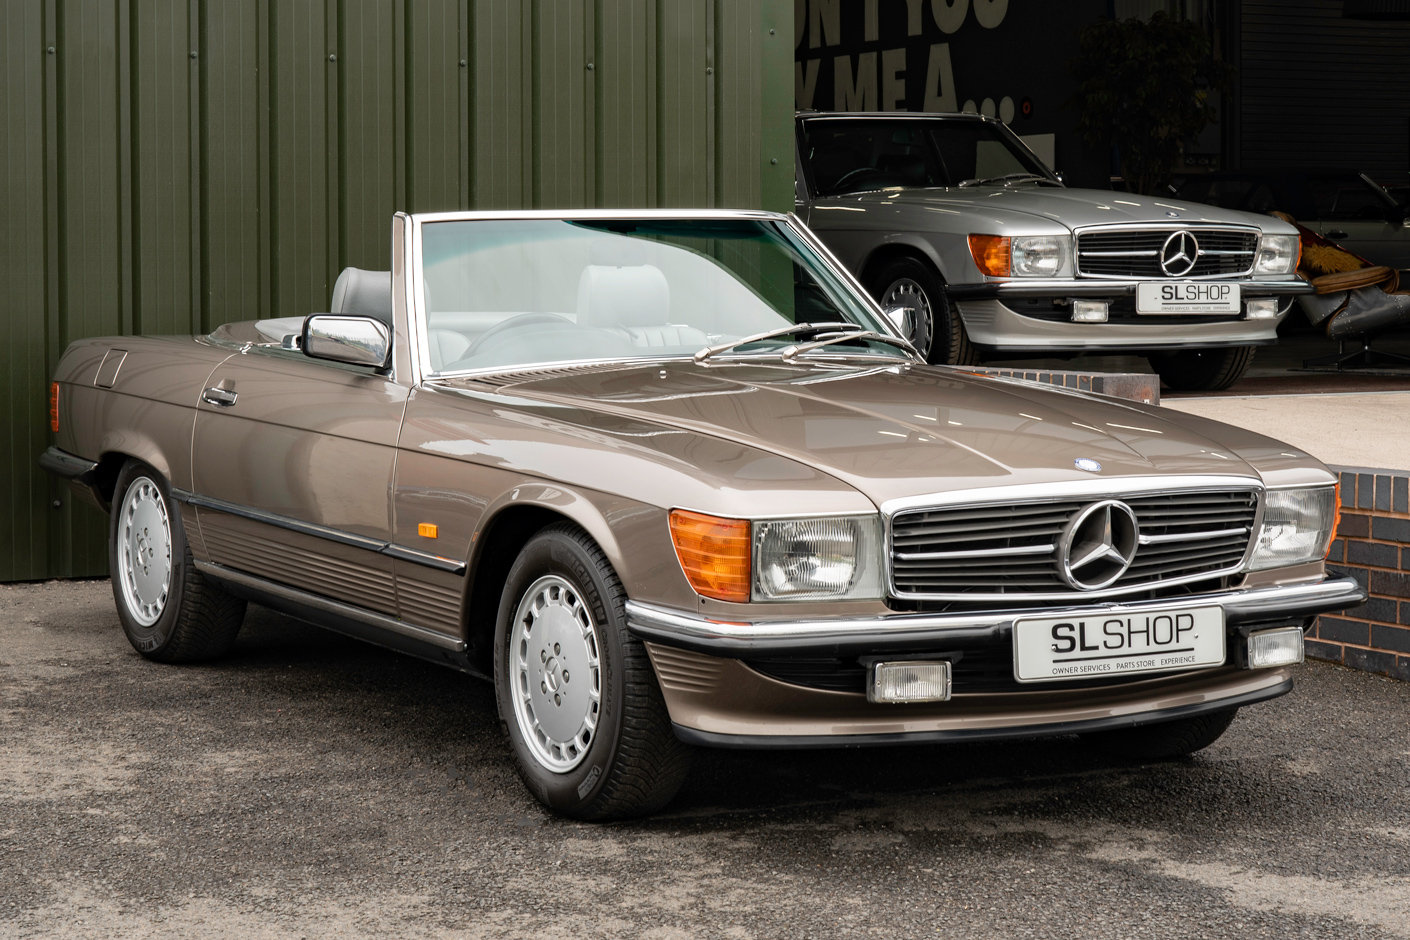 1987 Mercedes-Benz R107 300SL Impala Brown #2121 For Sale (picture 1 of 6)